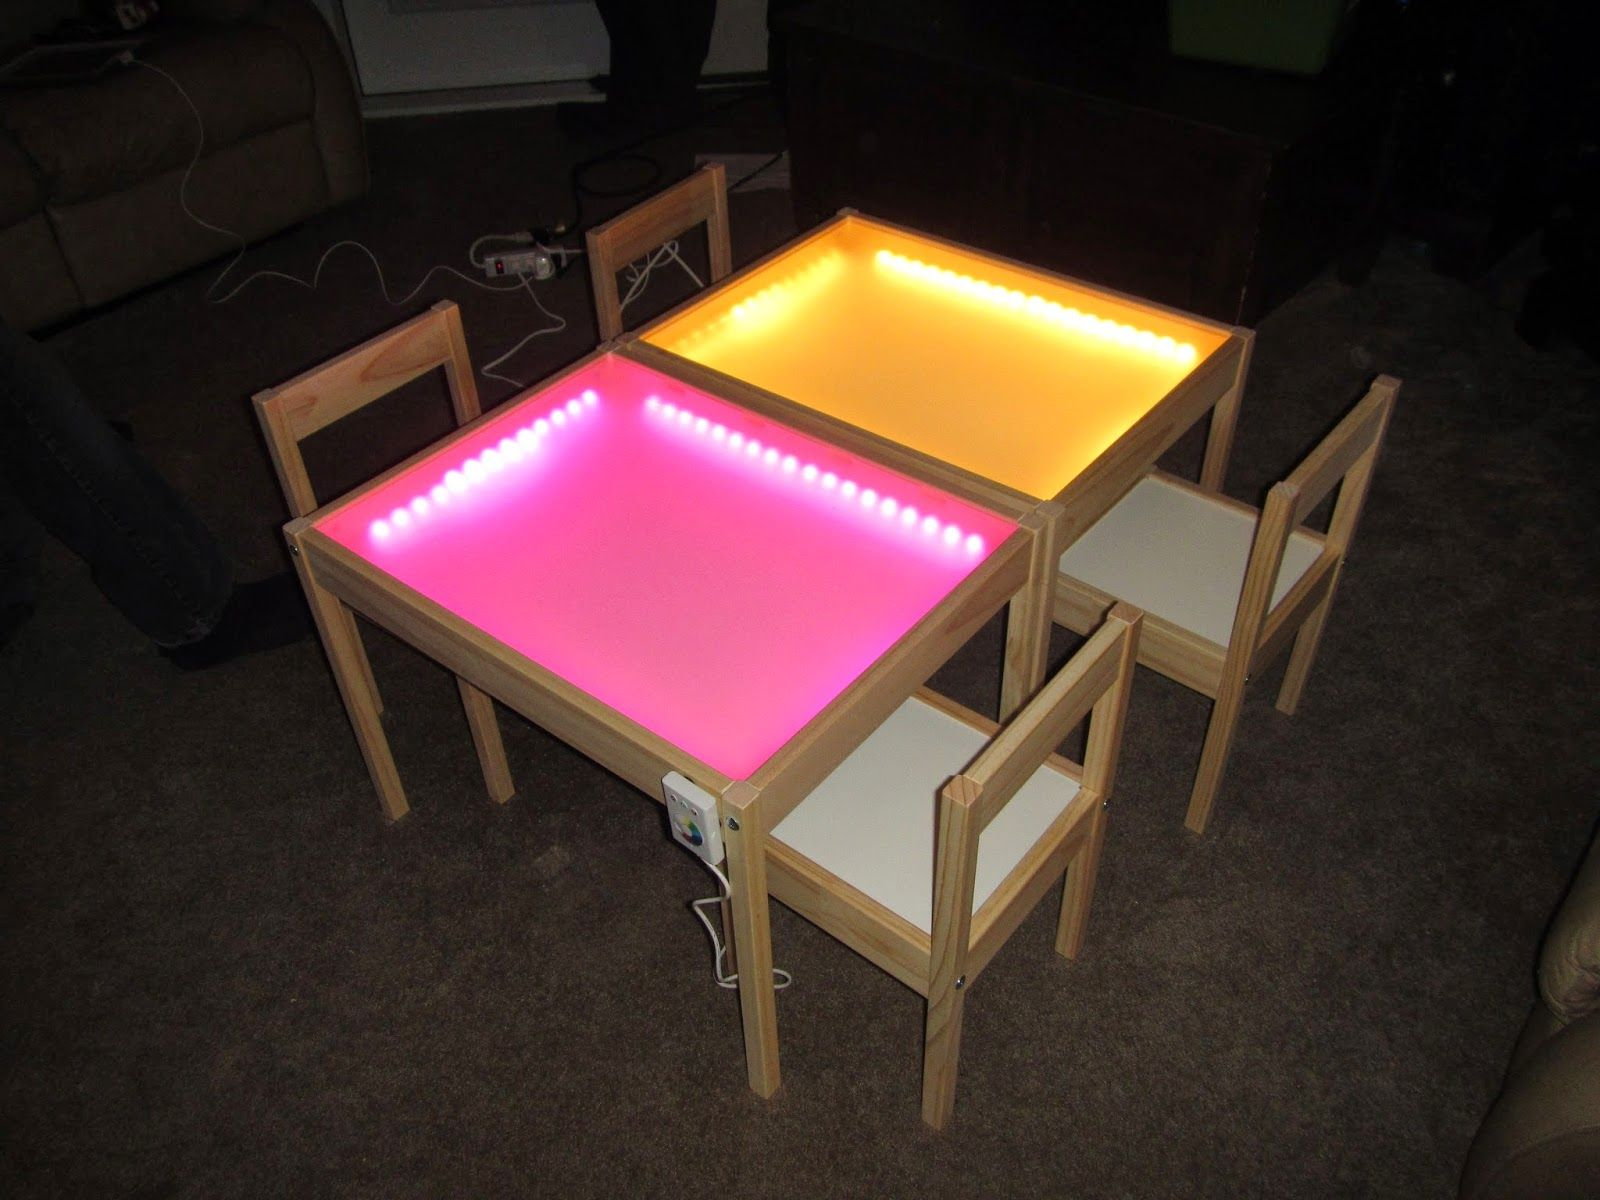 Diy overbed table - 17 Best Ideas About Ikea Table On Pinterest Ikea Lack Hack Ikea Table Hack And Ikea Lack